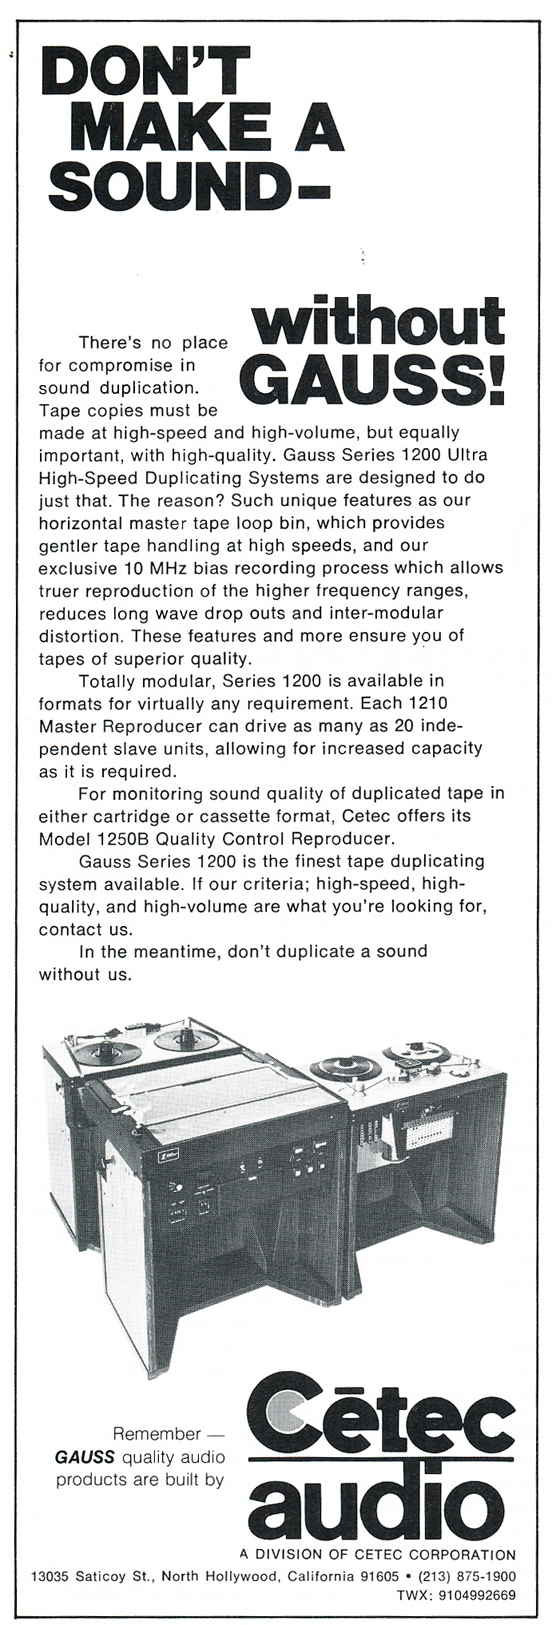 1975 ad for Cetec Reel tape recorders in Phantom Productions' vintgae recording collection